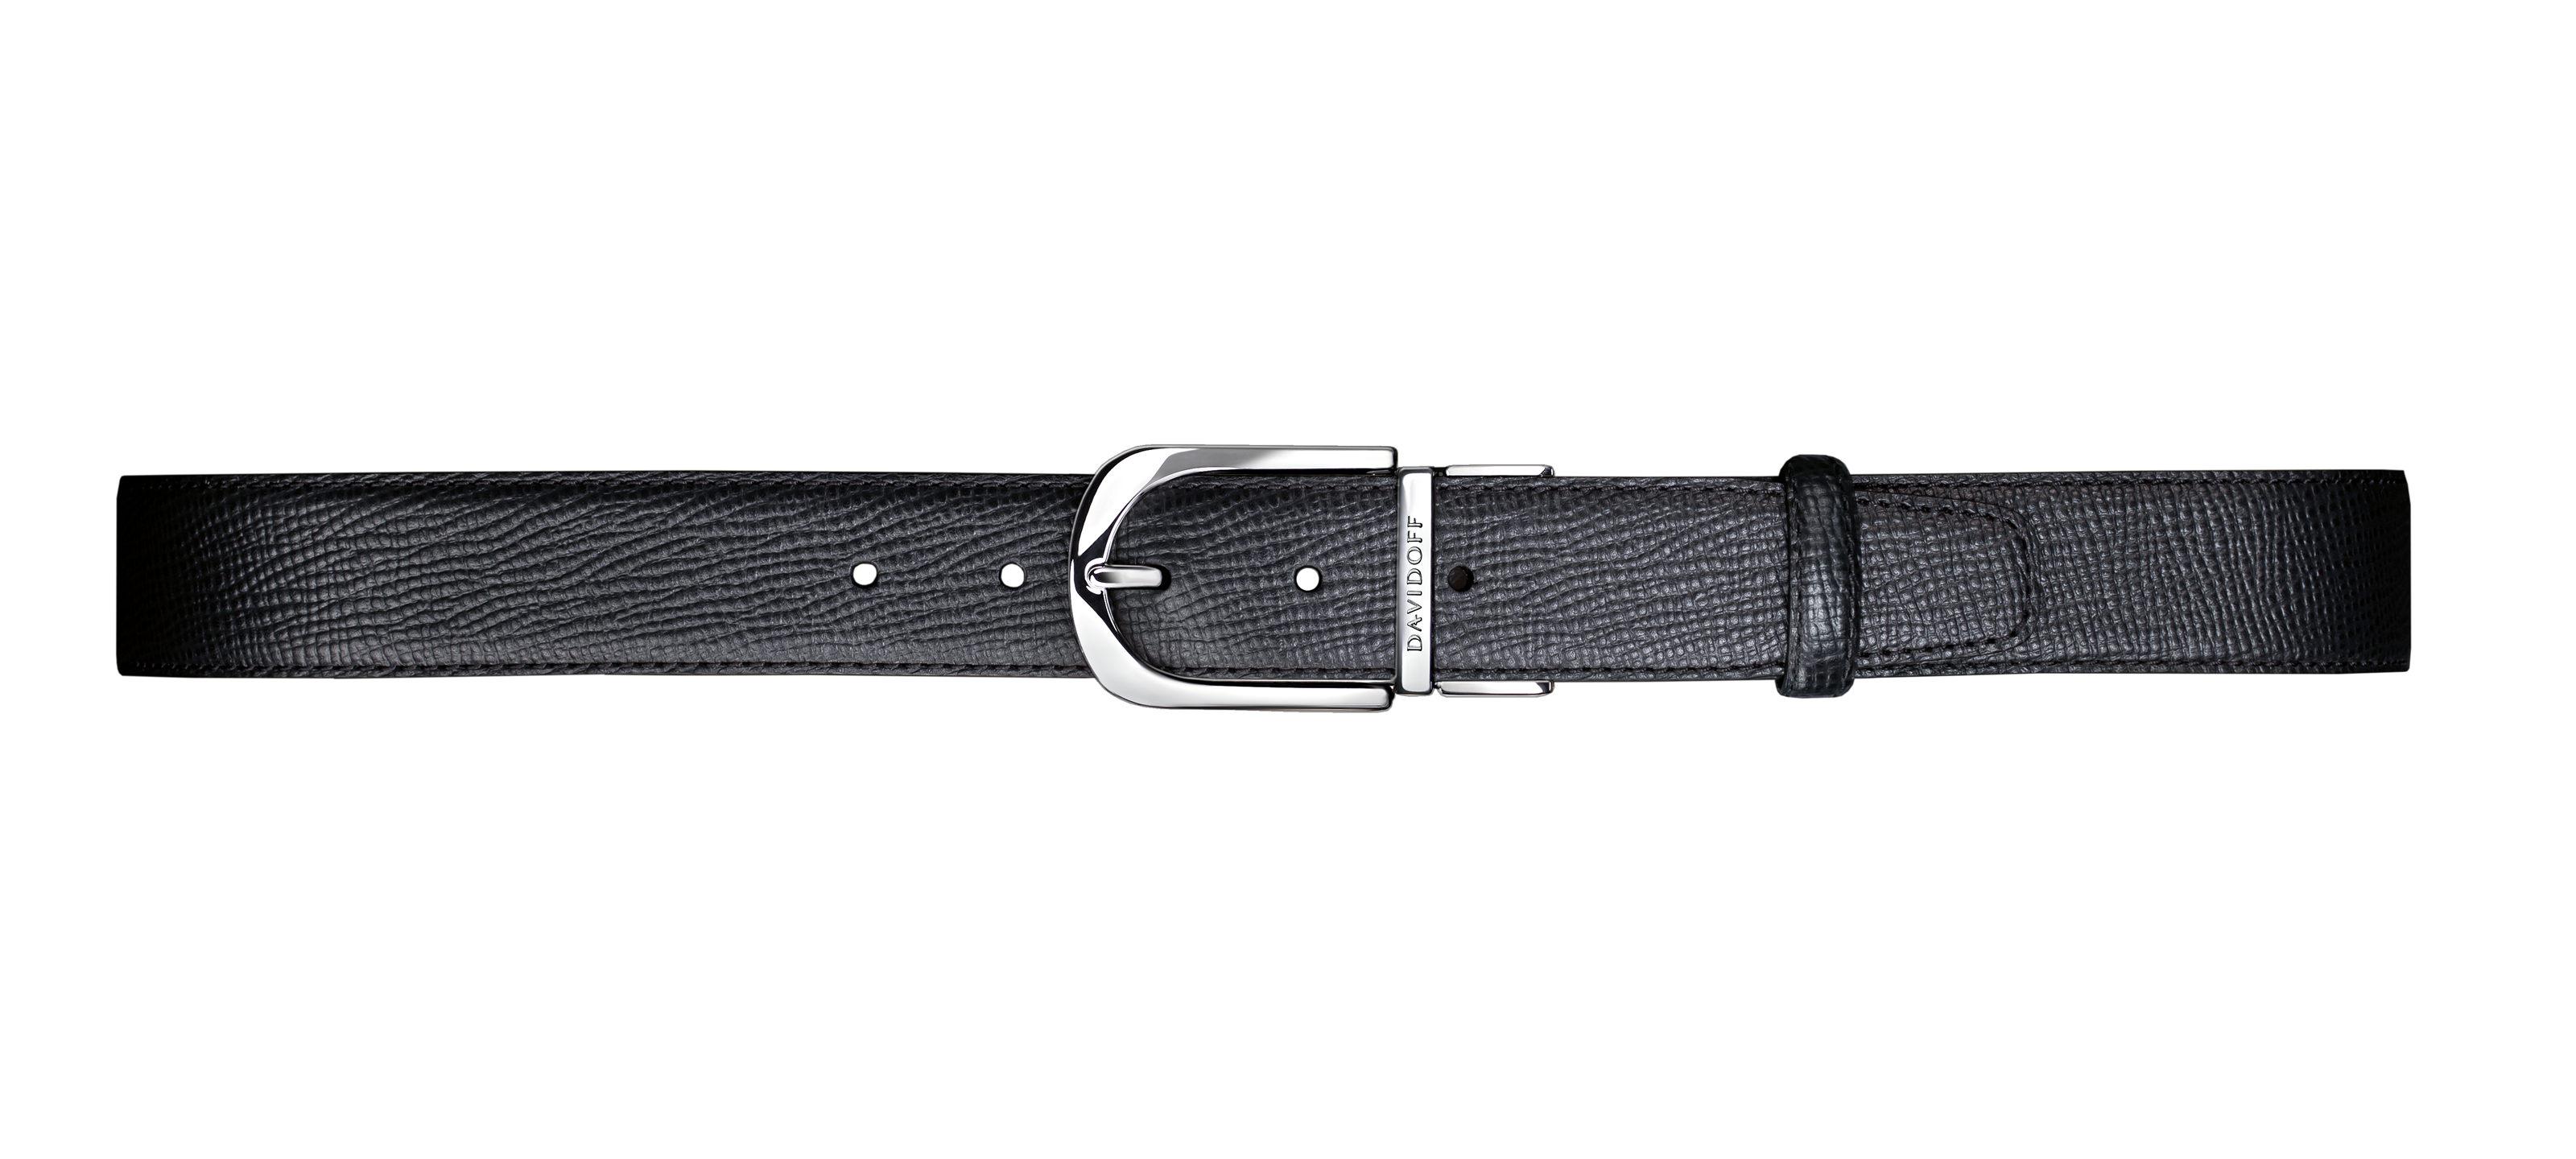 Leather Belt With Texture Png Image Leather Belt Leather Belt